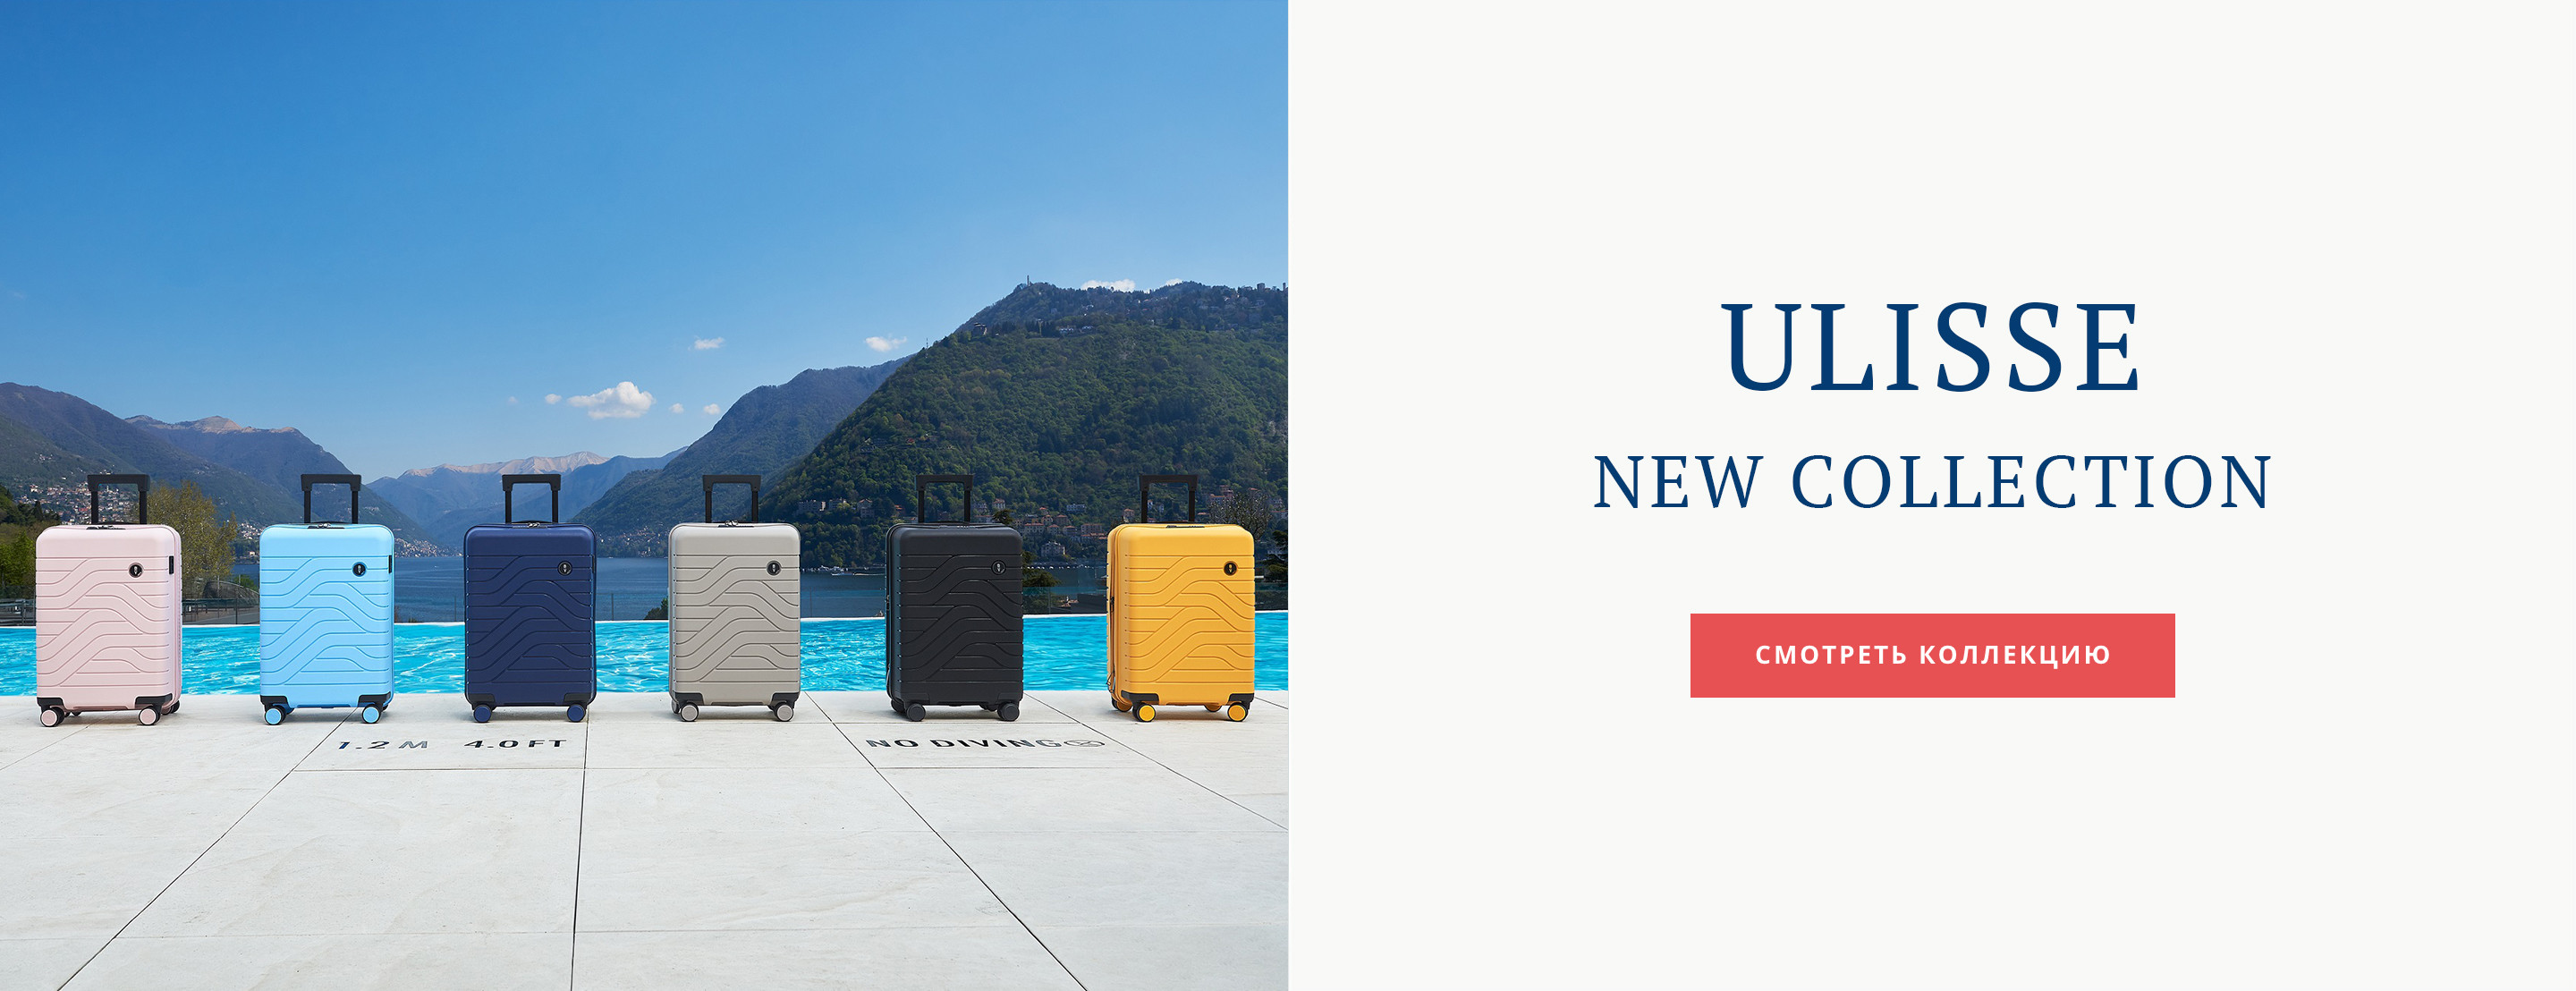 New BY1 ULISSE COLLECTION